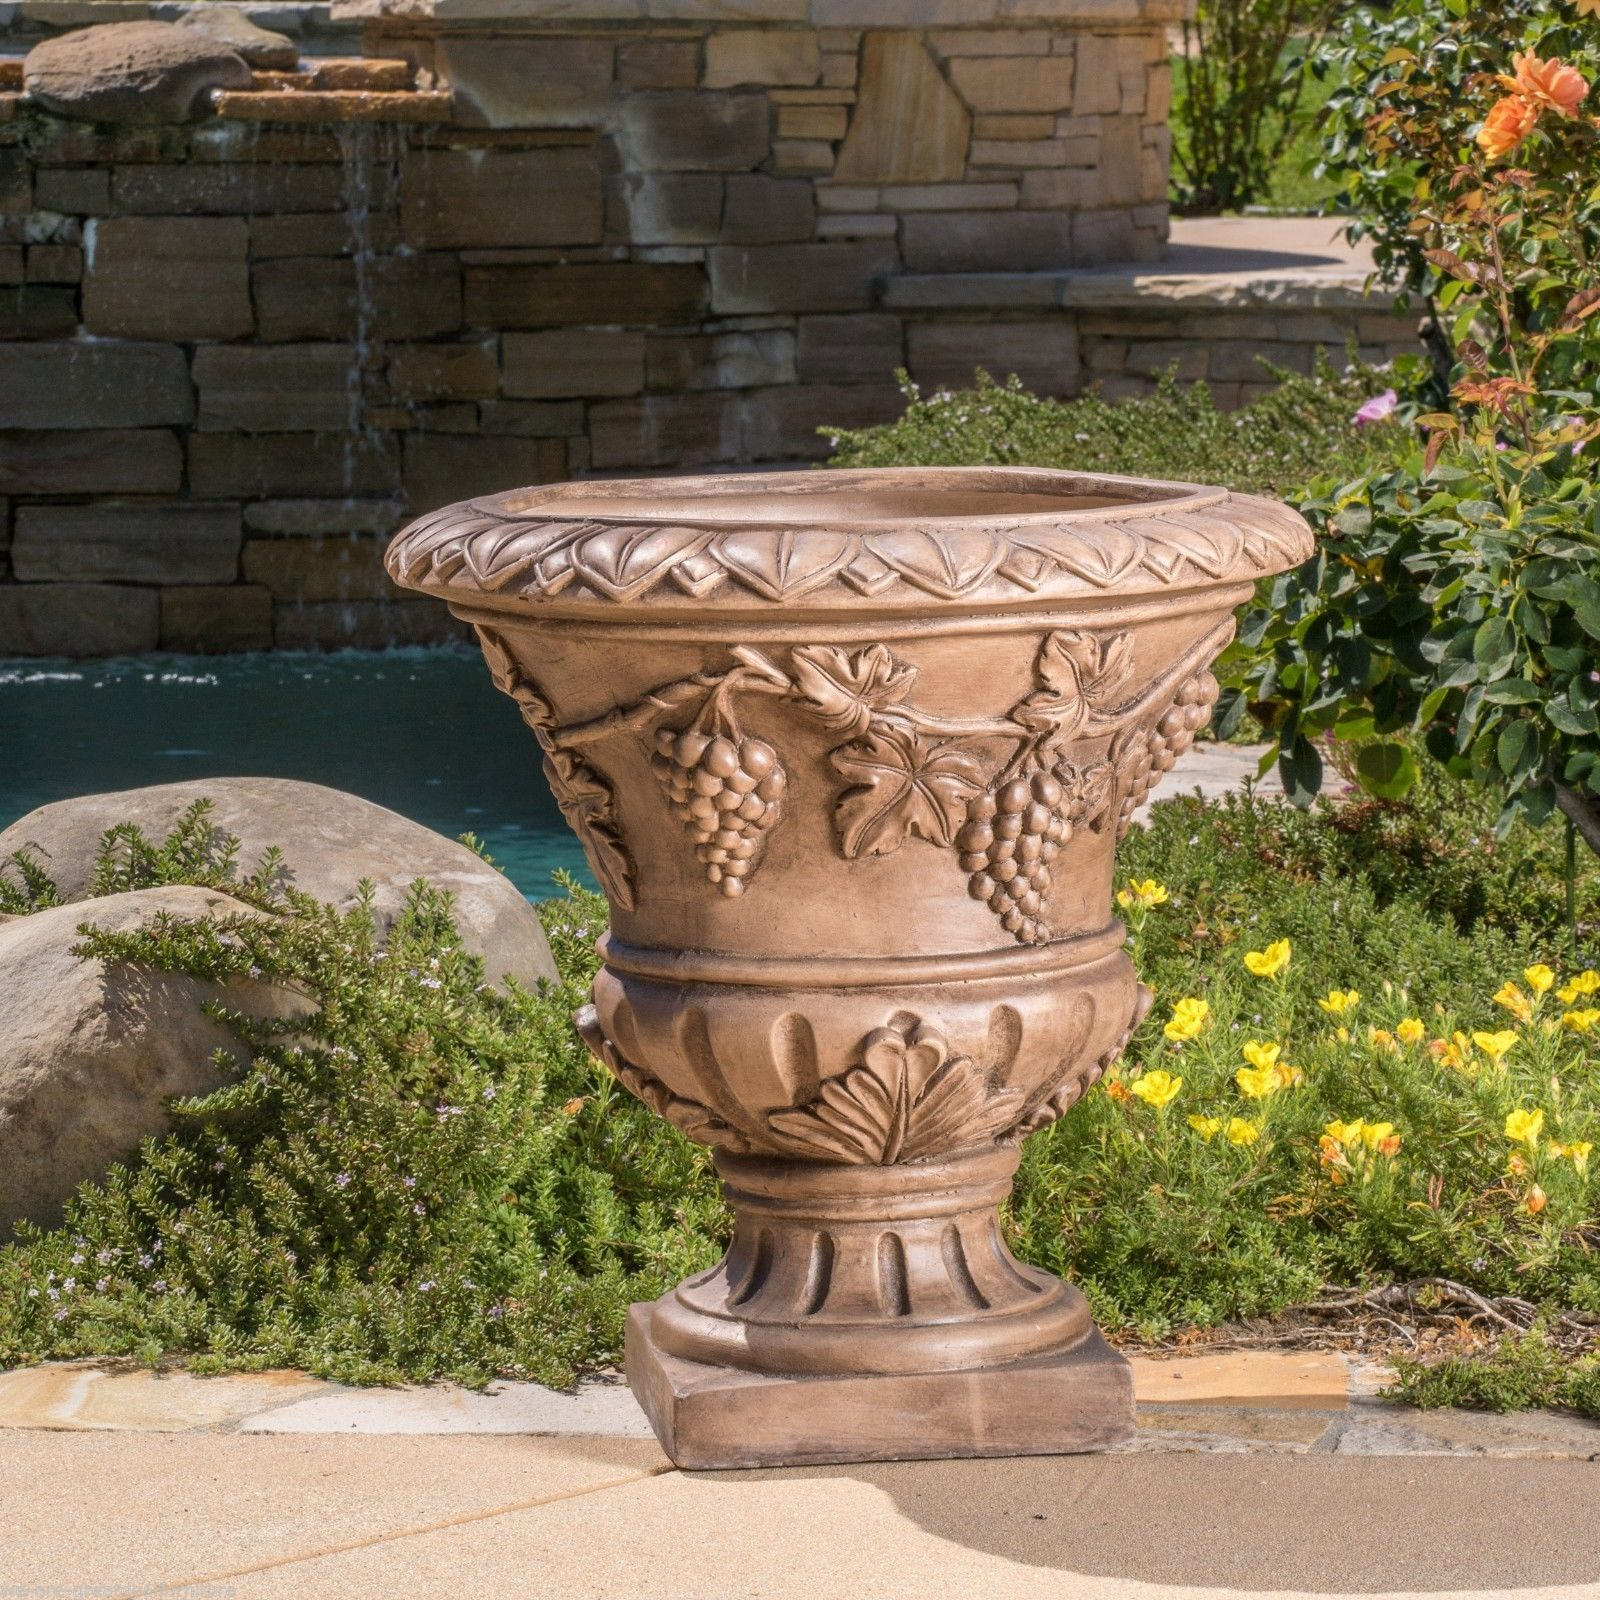 Large 21 Brown Stone Roman Decor Outdoor Garden Urn Planter / Flowers Pot Design Ideas